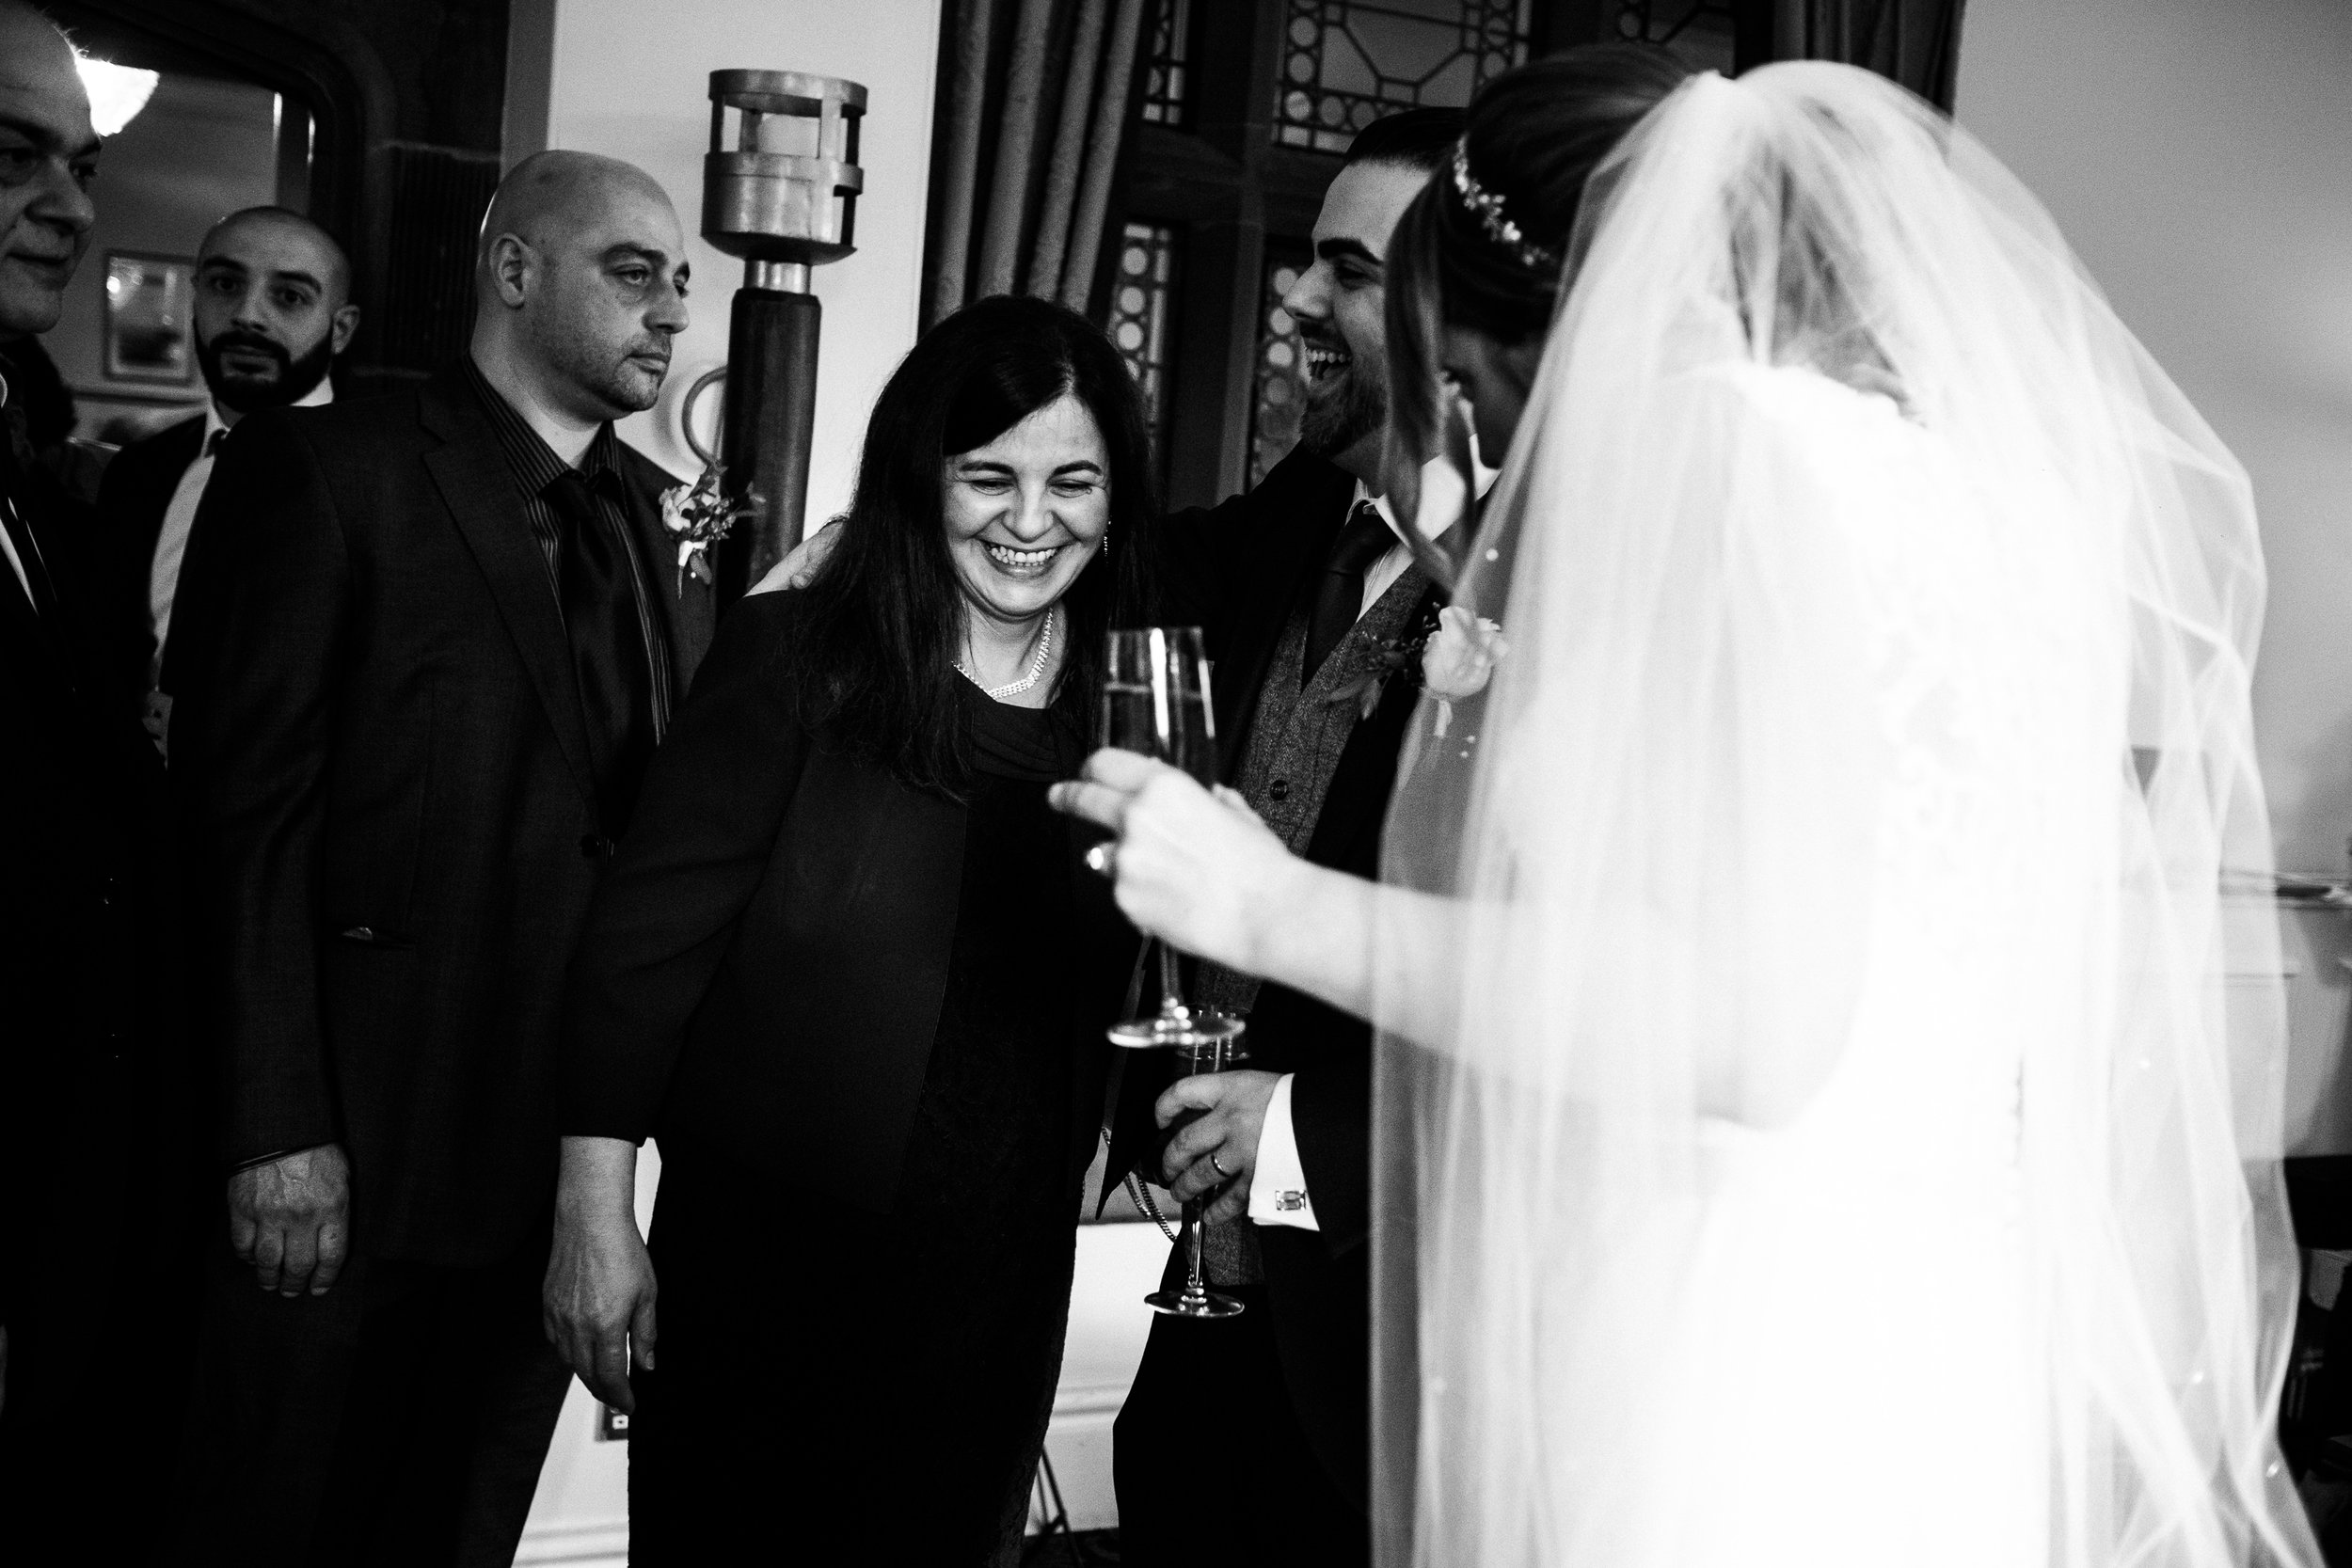 Birmingham Documentary Wedding Photography at New Hall, Sutton Coldfield Turkish Red Candid Reportage - Jenny Harper-39.jpg